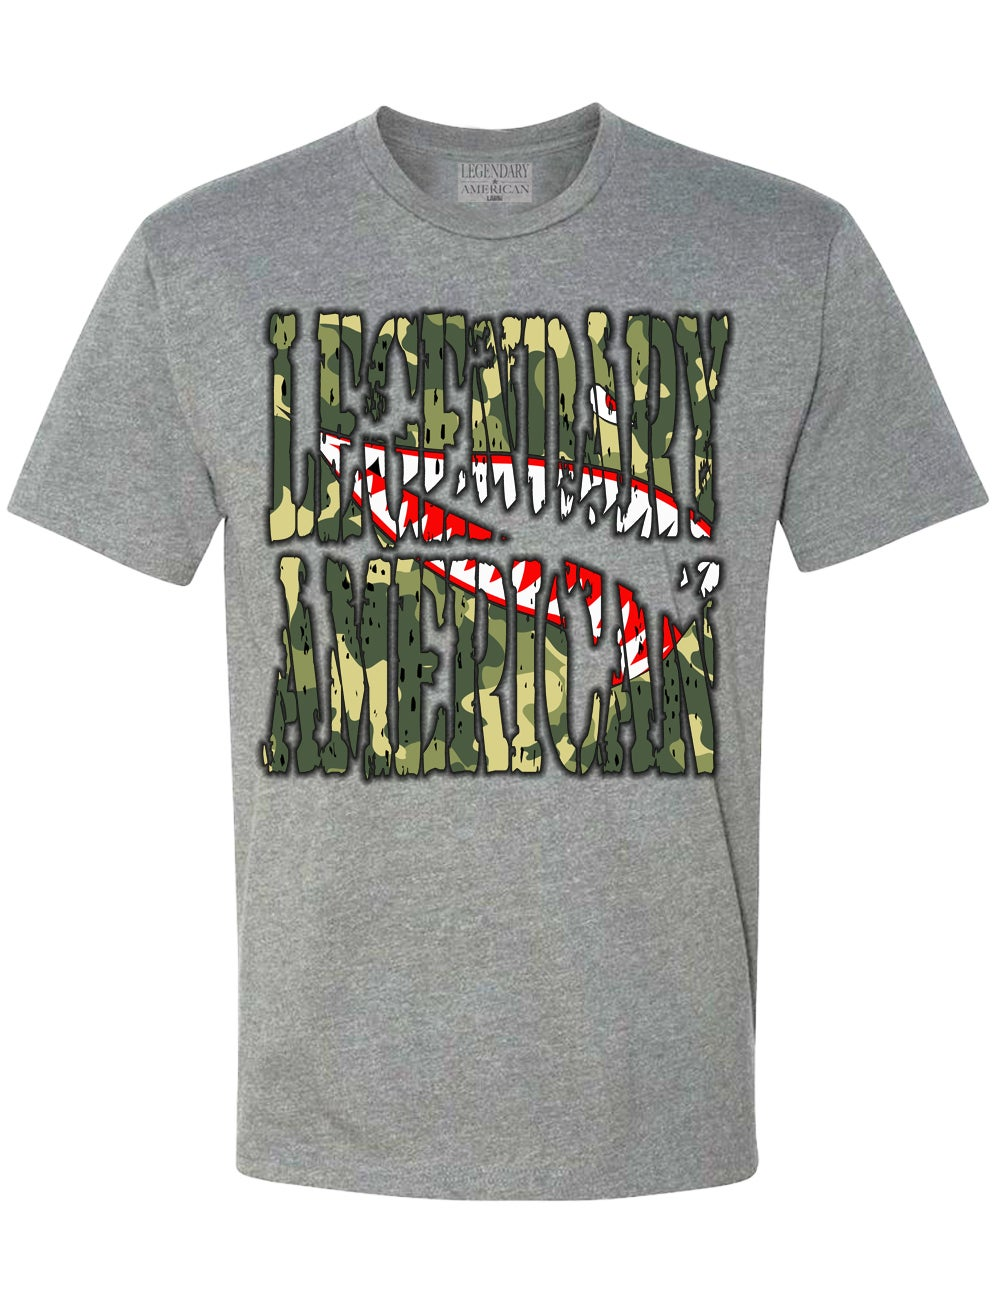 Image of Legendary American Flying Tiger tee in gray